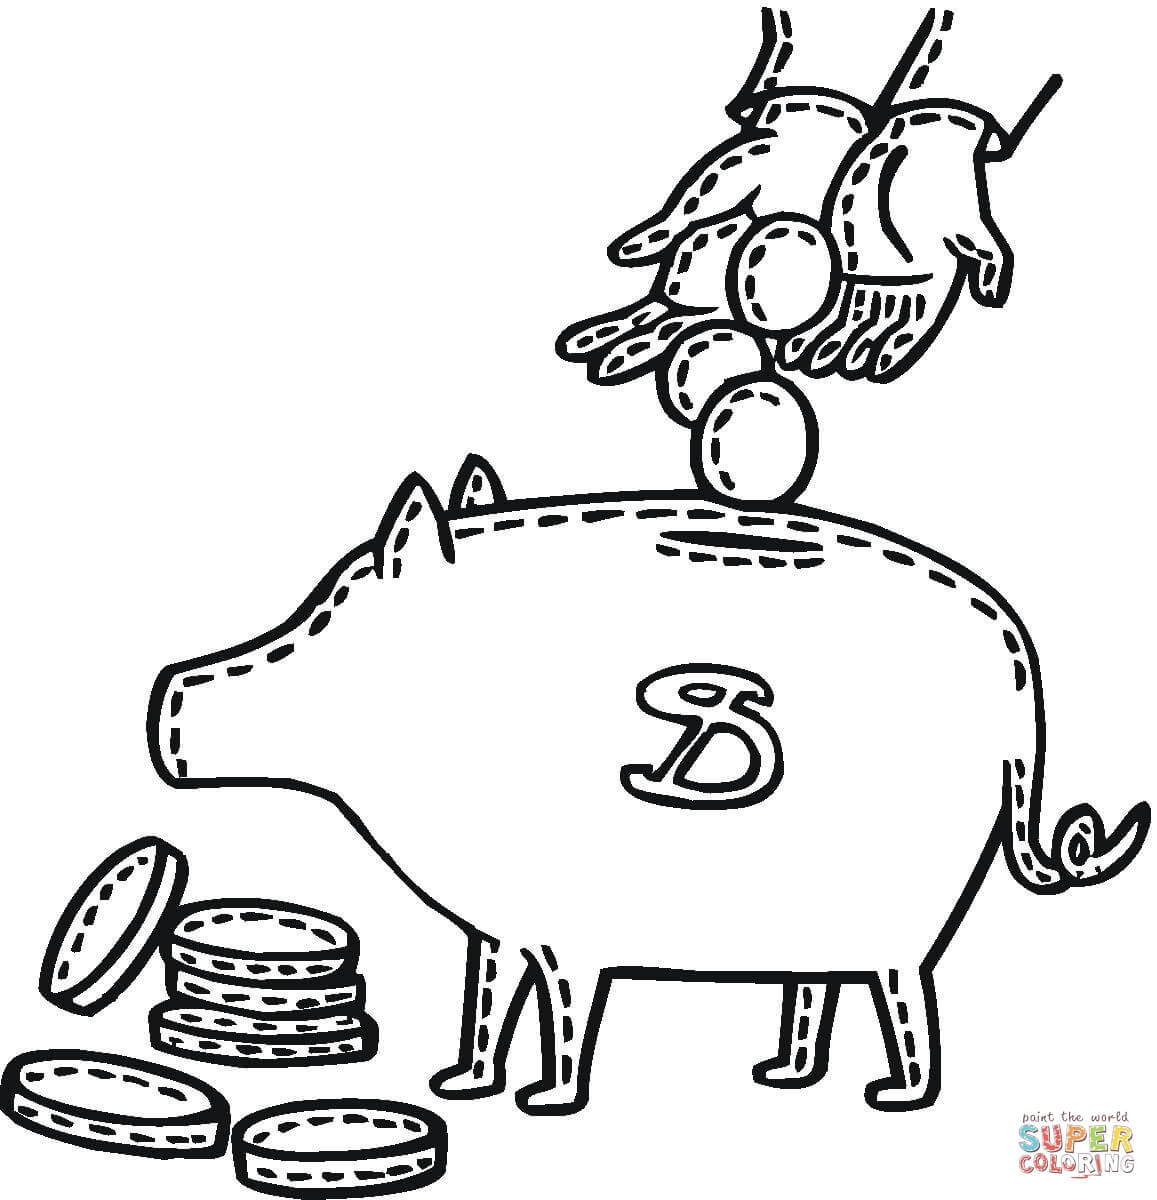 Penny Deposit Into A Piggy Bank Coloring Page